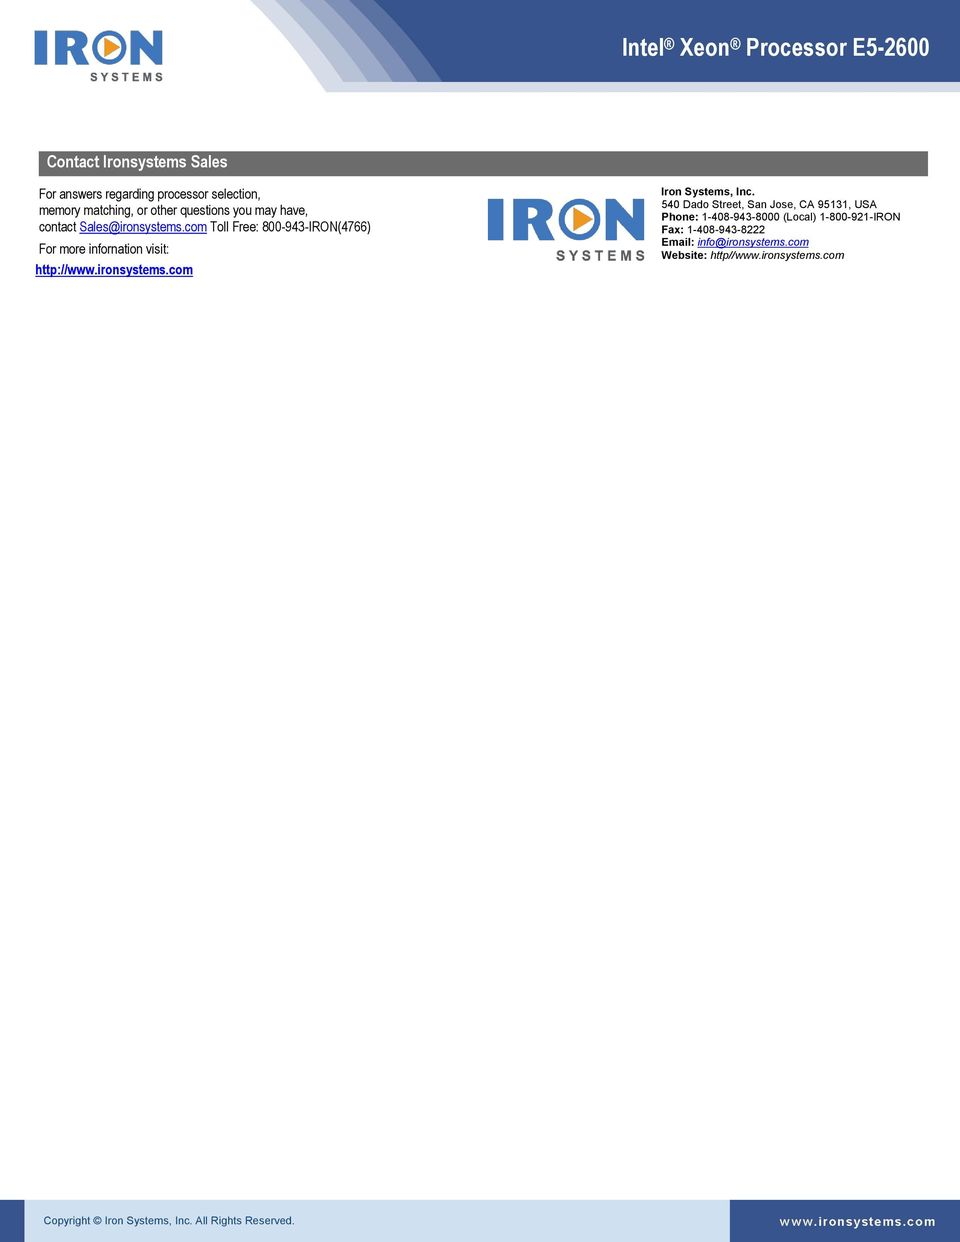 com Toll Free: 800-943-IRON(4766) For more infornation visit: http://www.ironsystems.